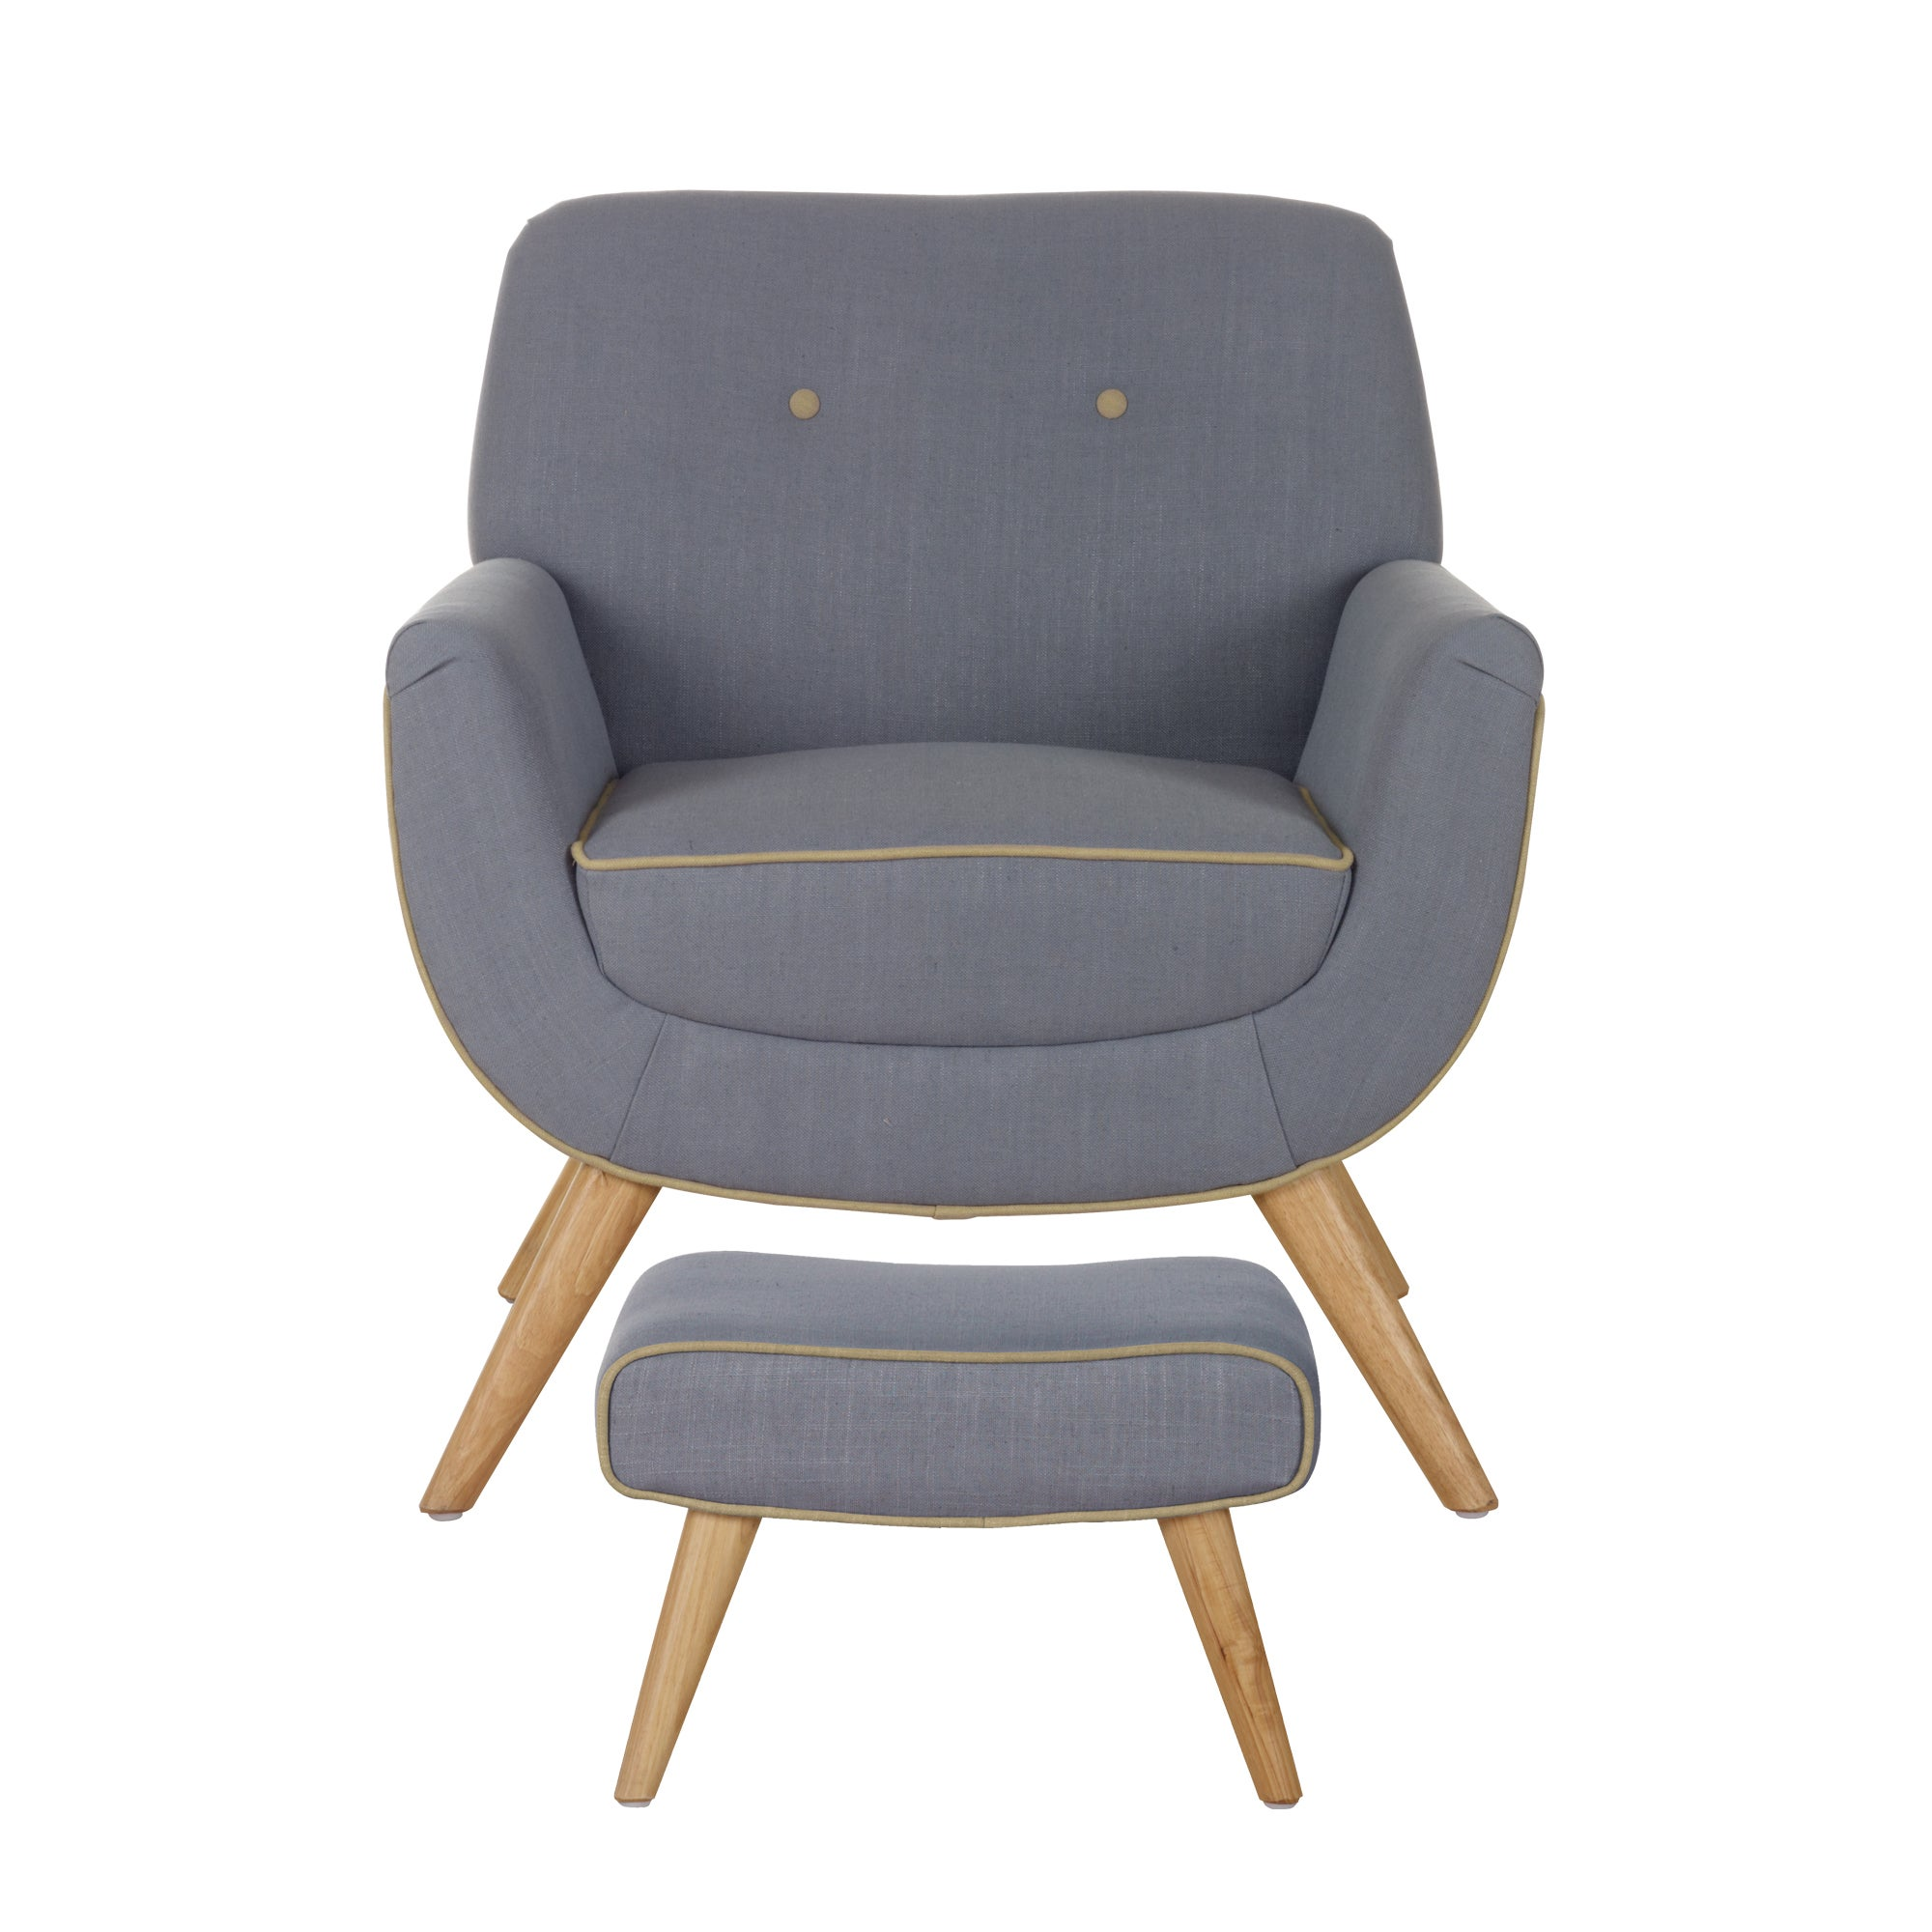 Skandi Charcoal Armchair and Footstool Charcoal Grey